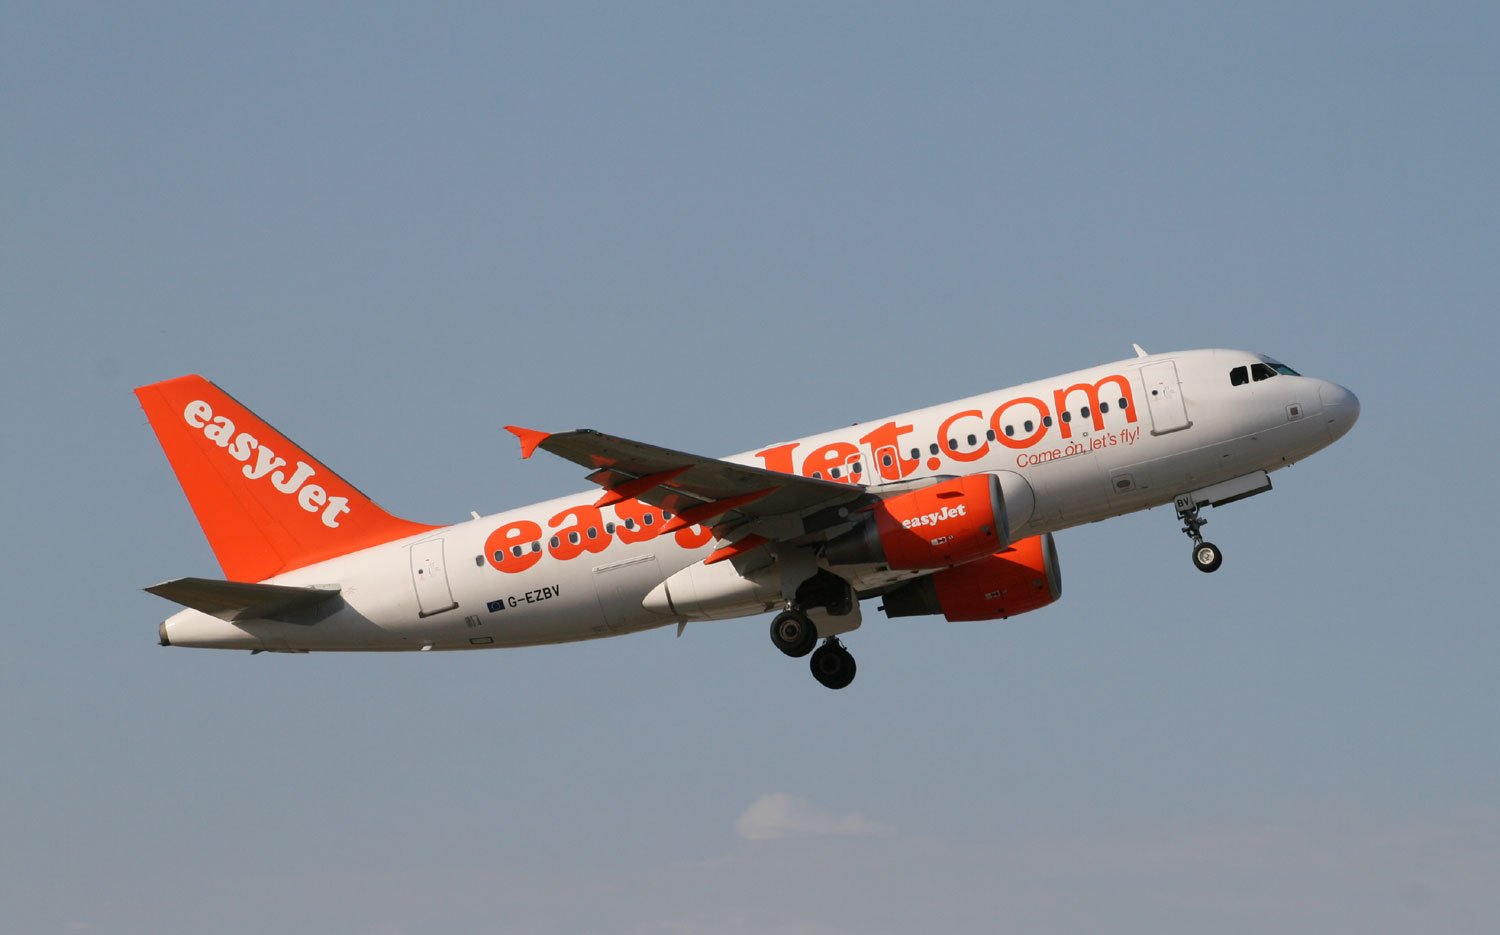 easy jet This is generation easyjet book flights book your easyjet flights in an experience designed to be as fast as possible scan and save your cards with your phone camera, typing long card numbers is now a thing of the past.